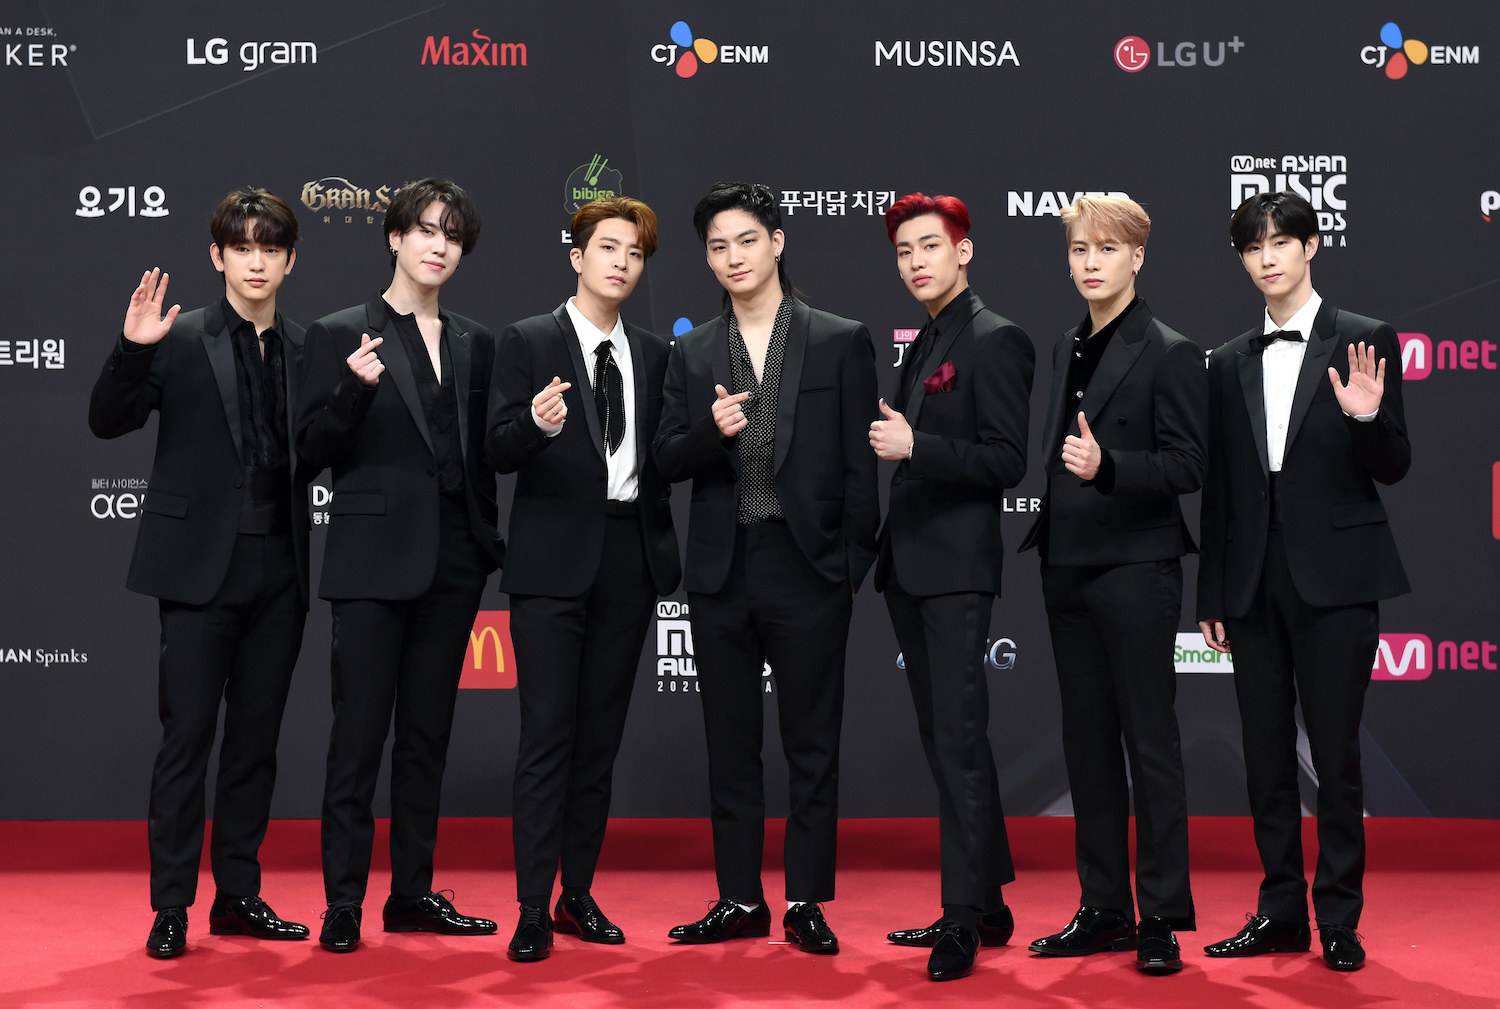 GOT7, wearing suits, attends the 2020 Mnet Asian Music Awards